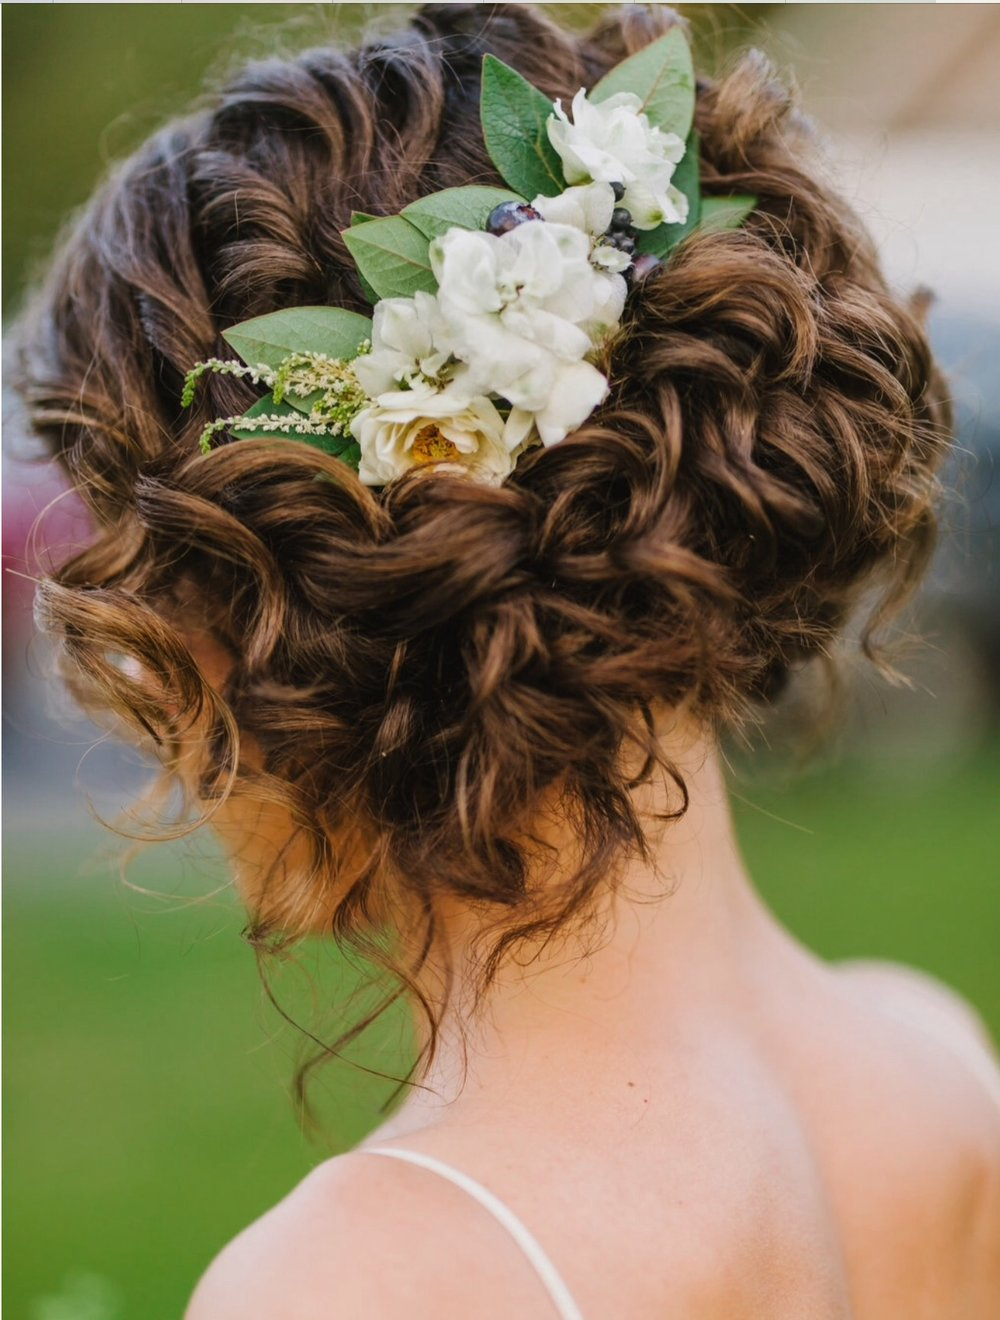 floral hair piece, Style by Nicole.jpg